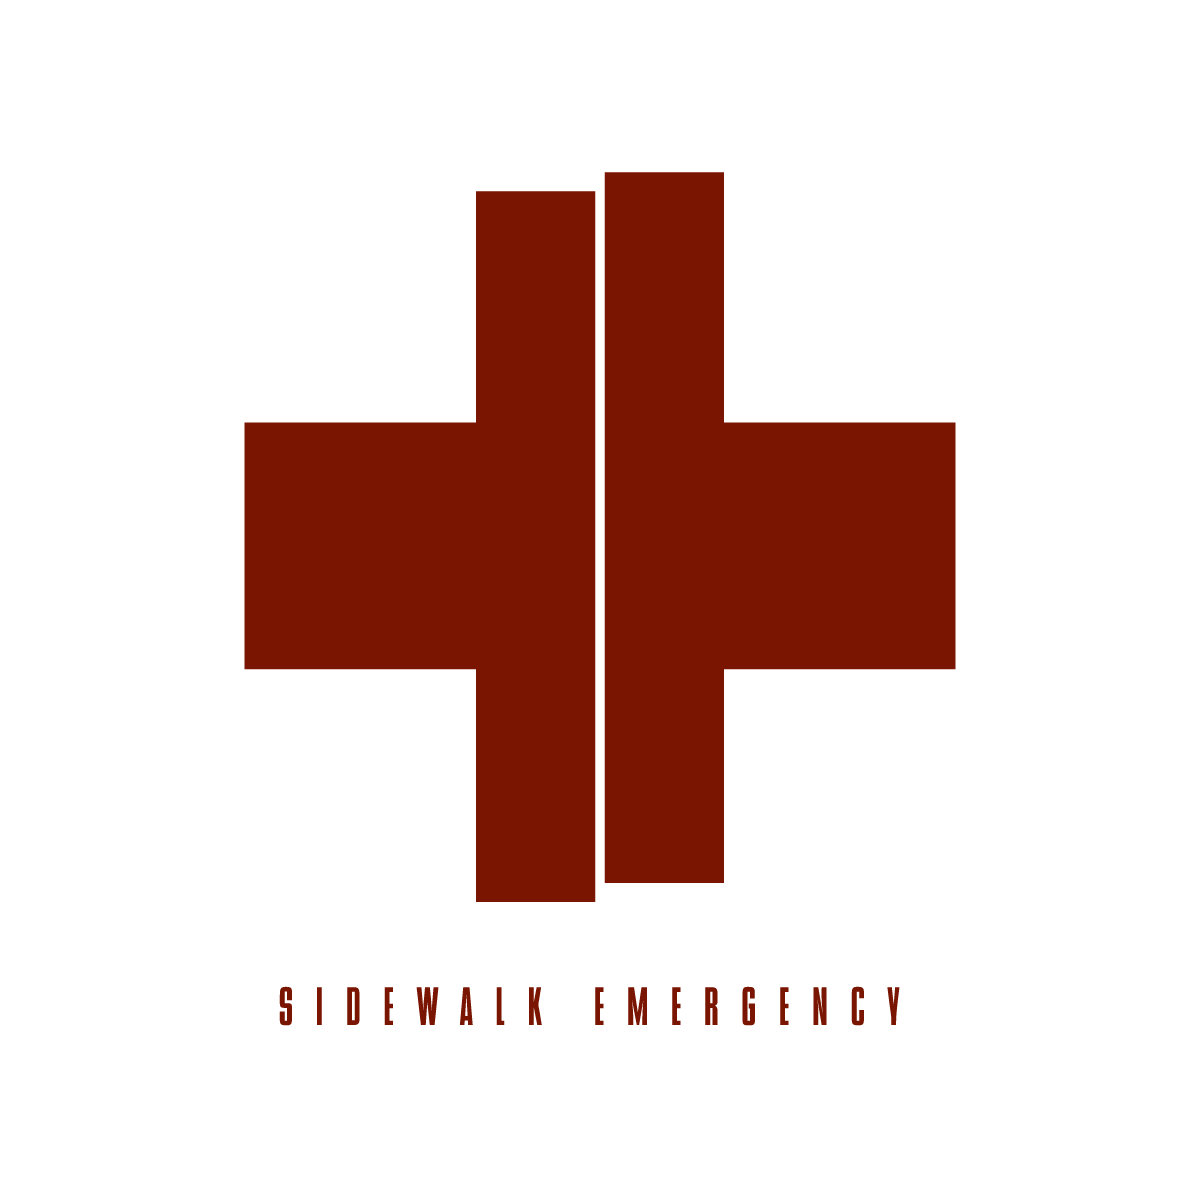 sidewalk emergency logo